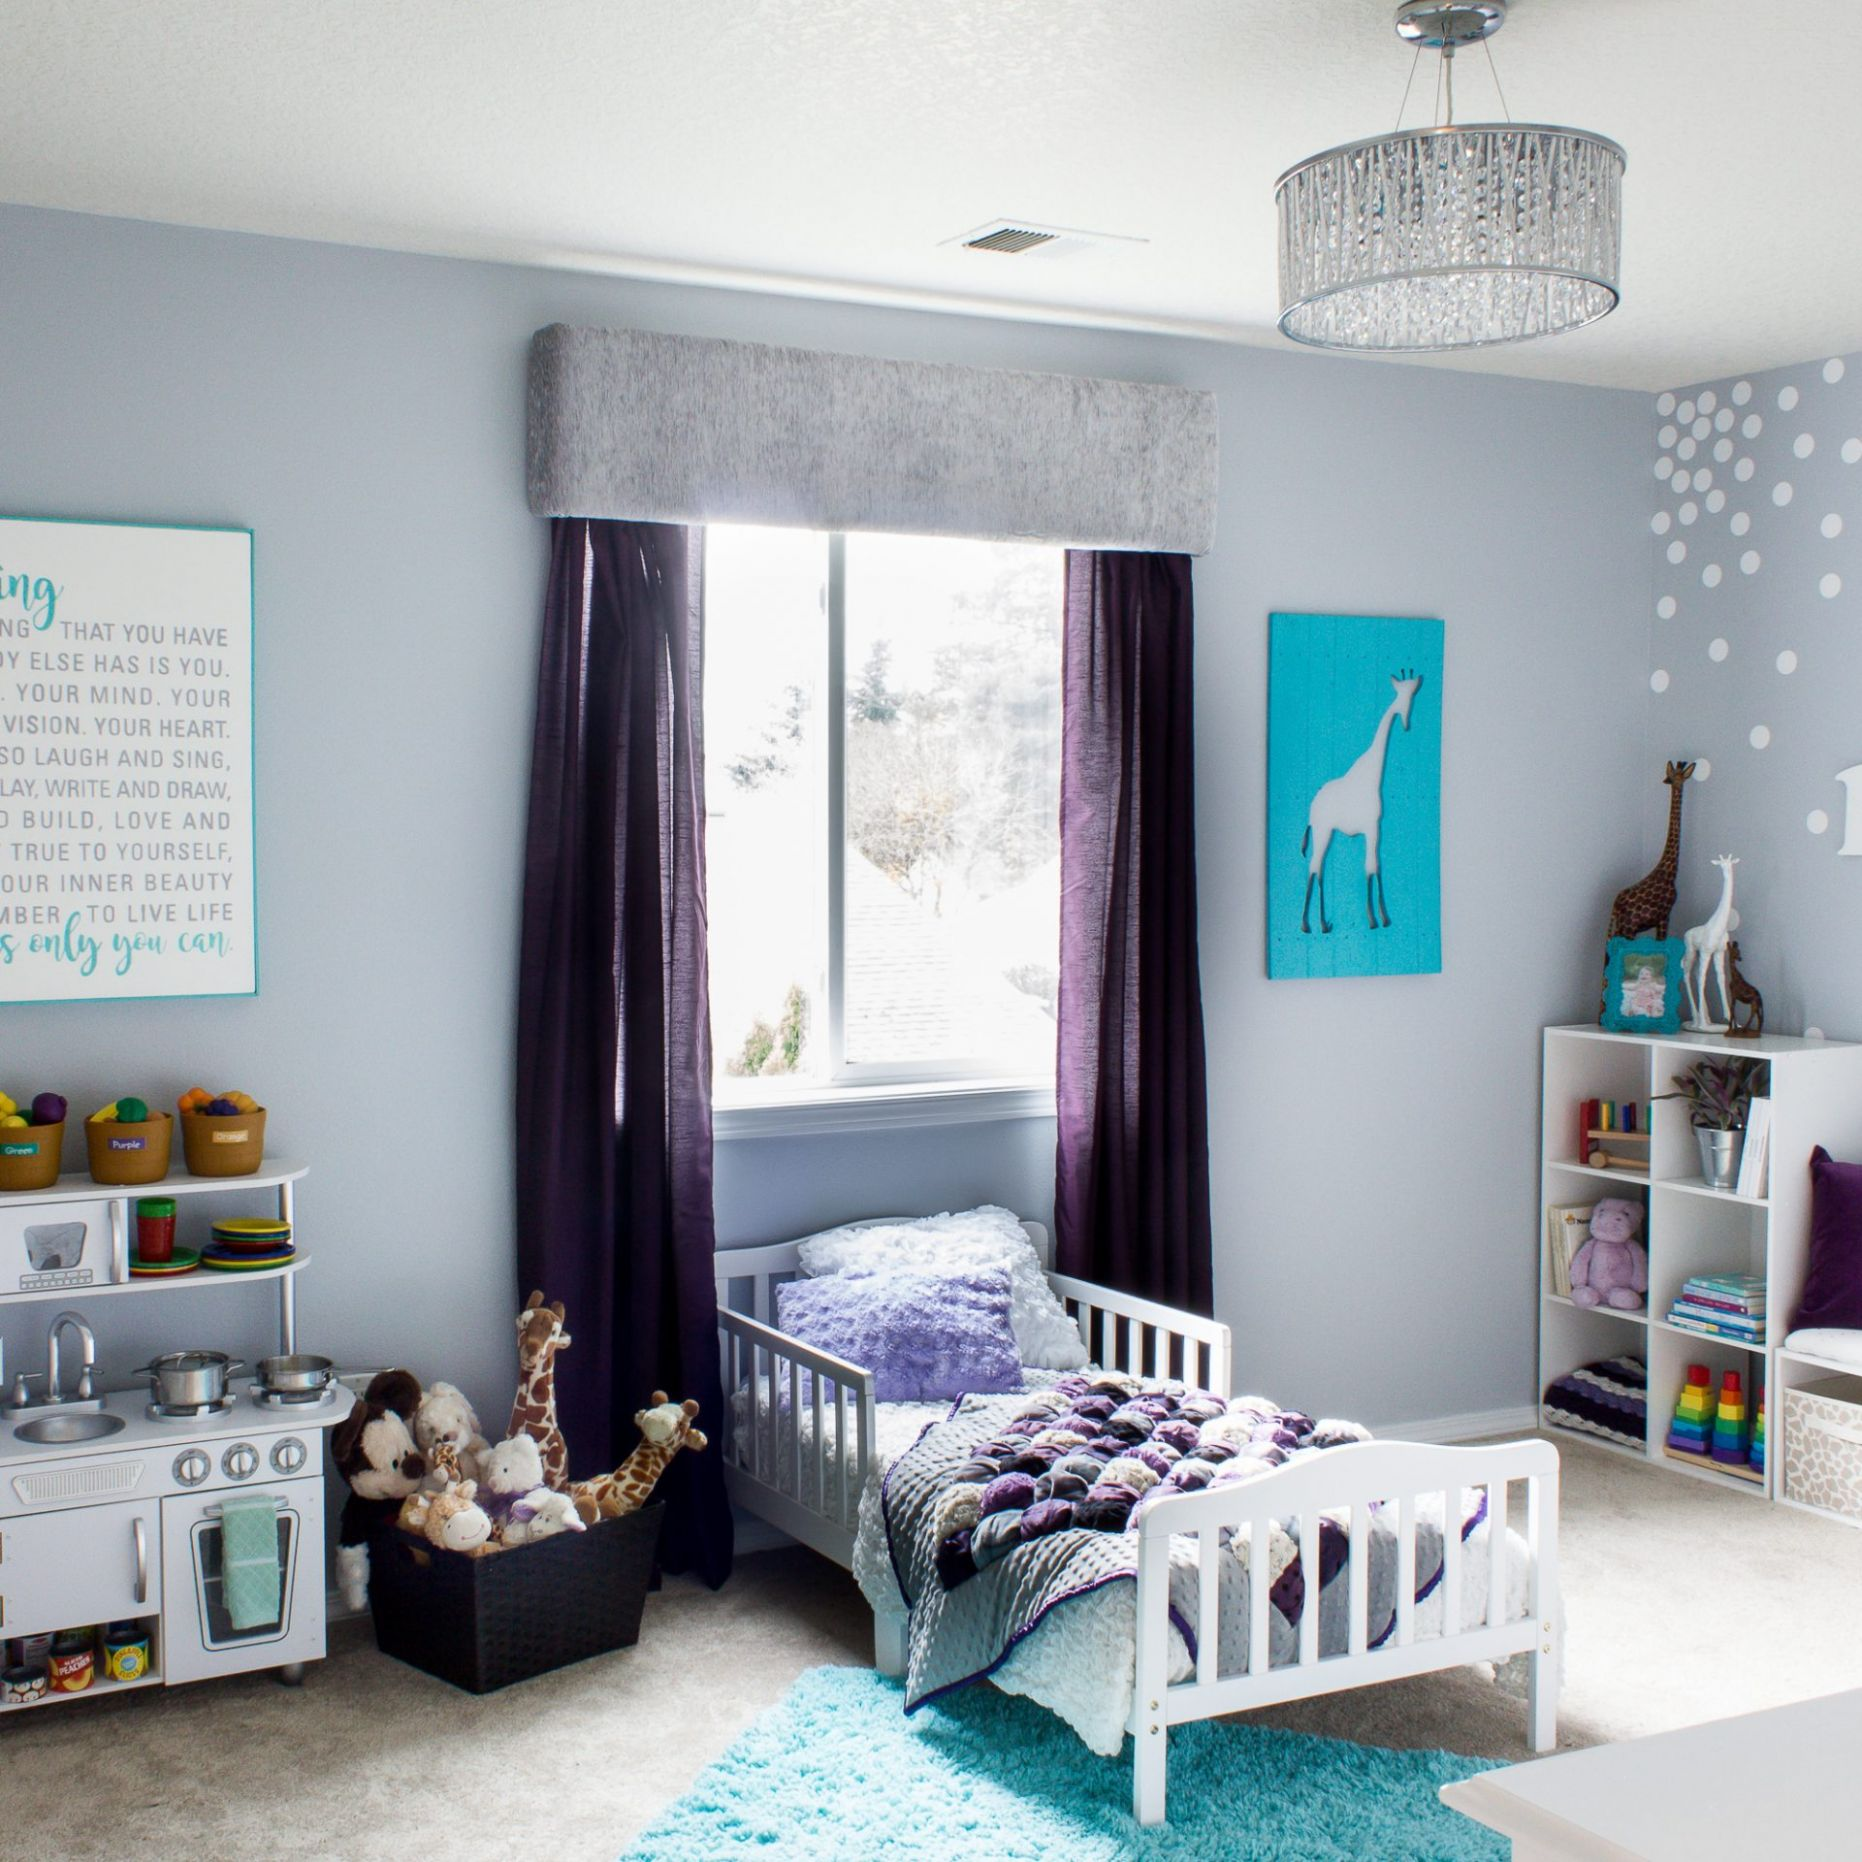 Cute Toddler Girl Room Ideas with may DIY decor tutorials and plans - bedroom ideas toddler girl